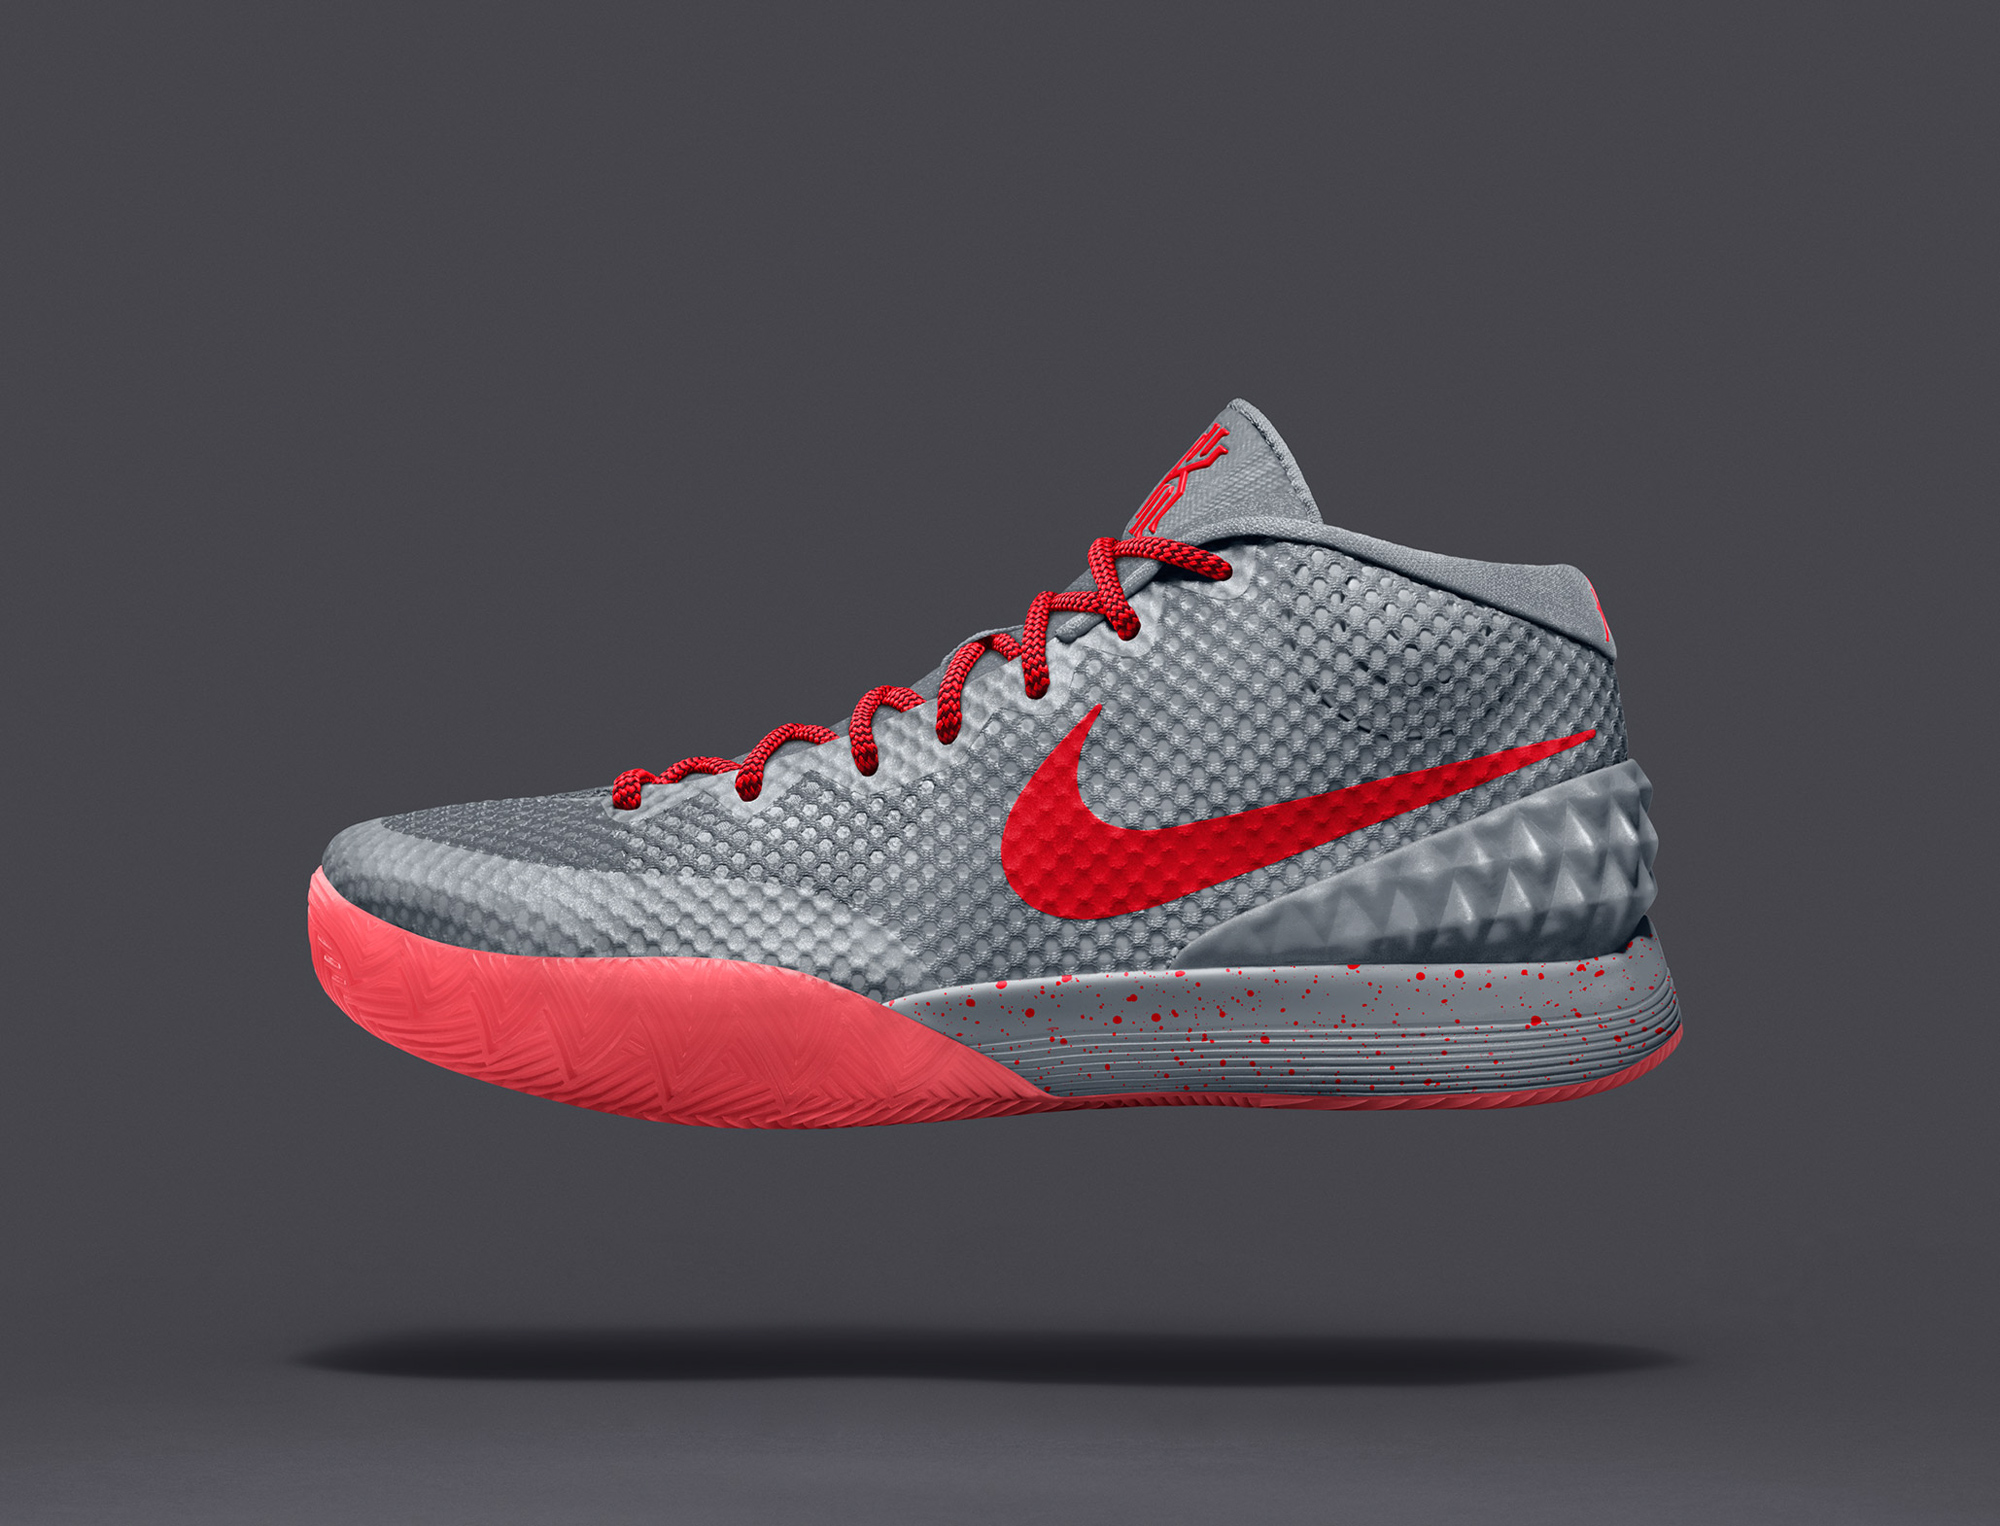 kyrie irving scarpe nike nike football